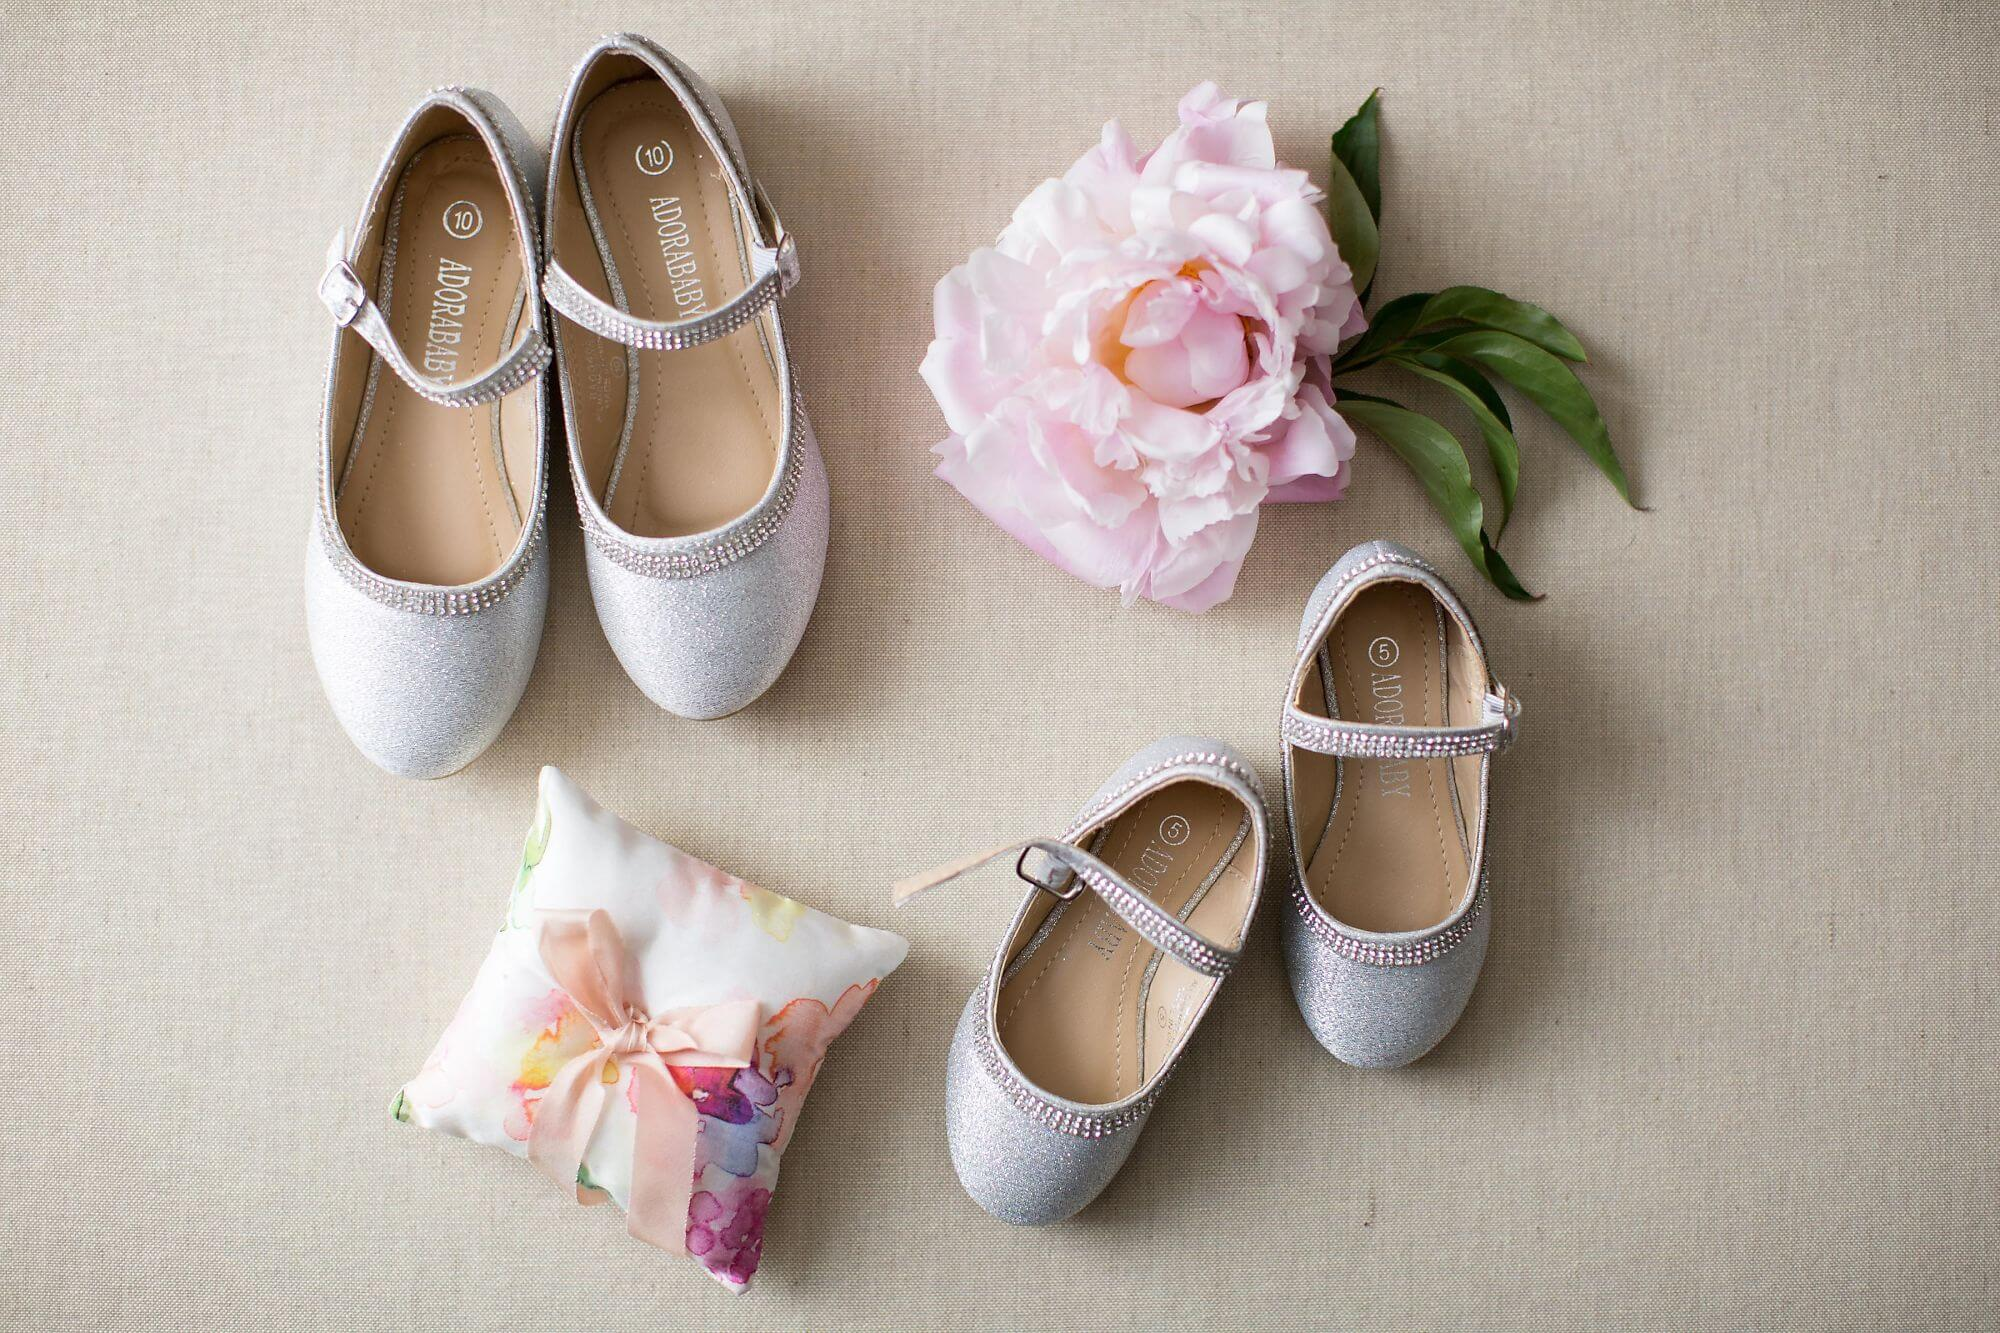 Artistic photo of flower girls' white dress shoes with floral watercolour ring pillow and pink peony flower - Historia Wedding and Event Planning